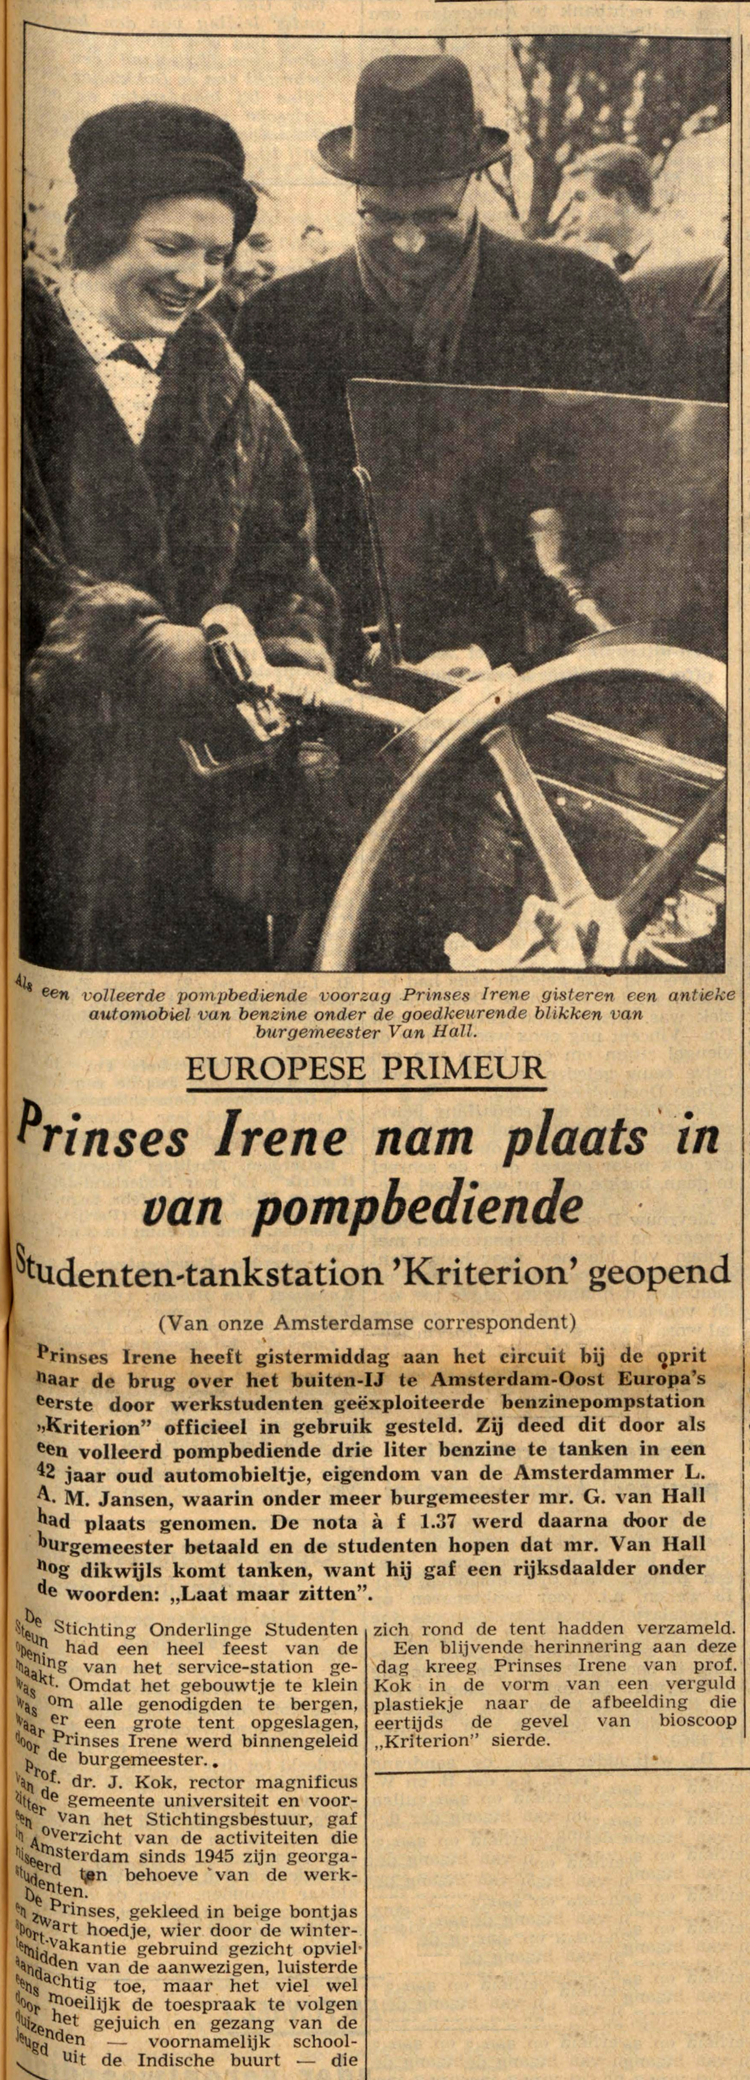 18 februari 1960 - Prinses Irene nam plaats in van pompbediende